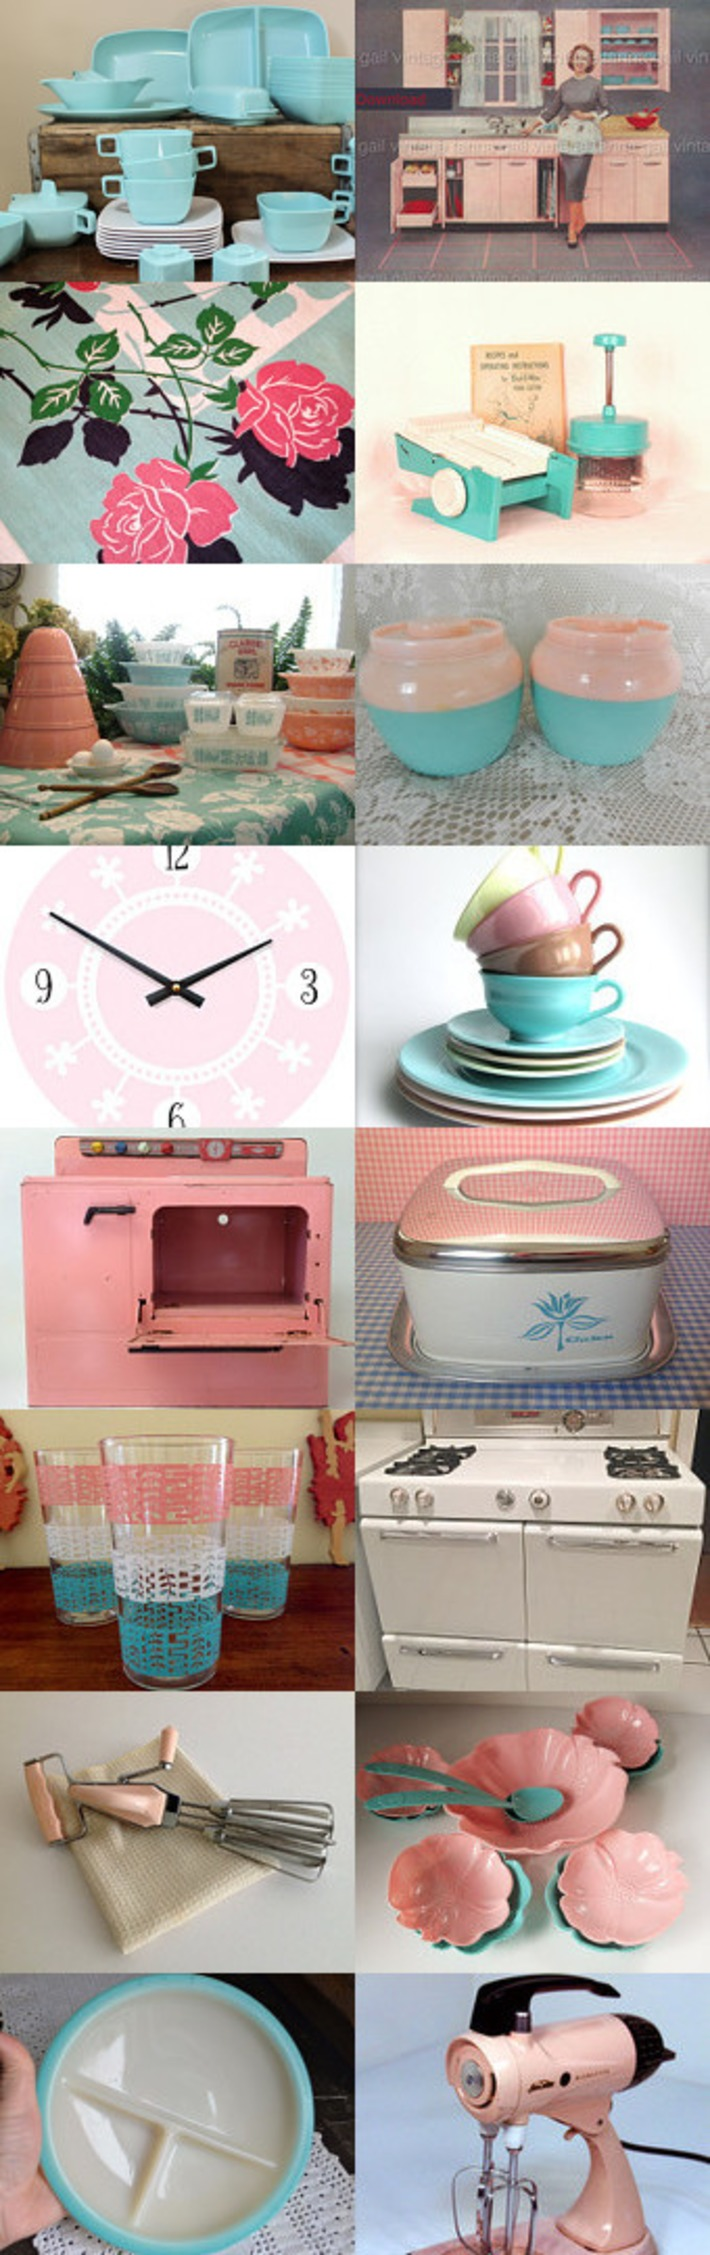 Spring Kitchen in Aquas & Pinks by Lonnie on Etsy | Antiques & Vintage Collectibles | Scoop.it